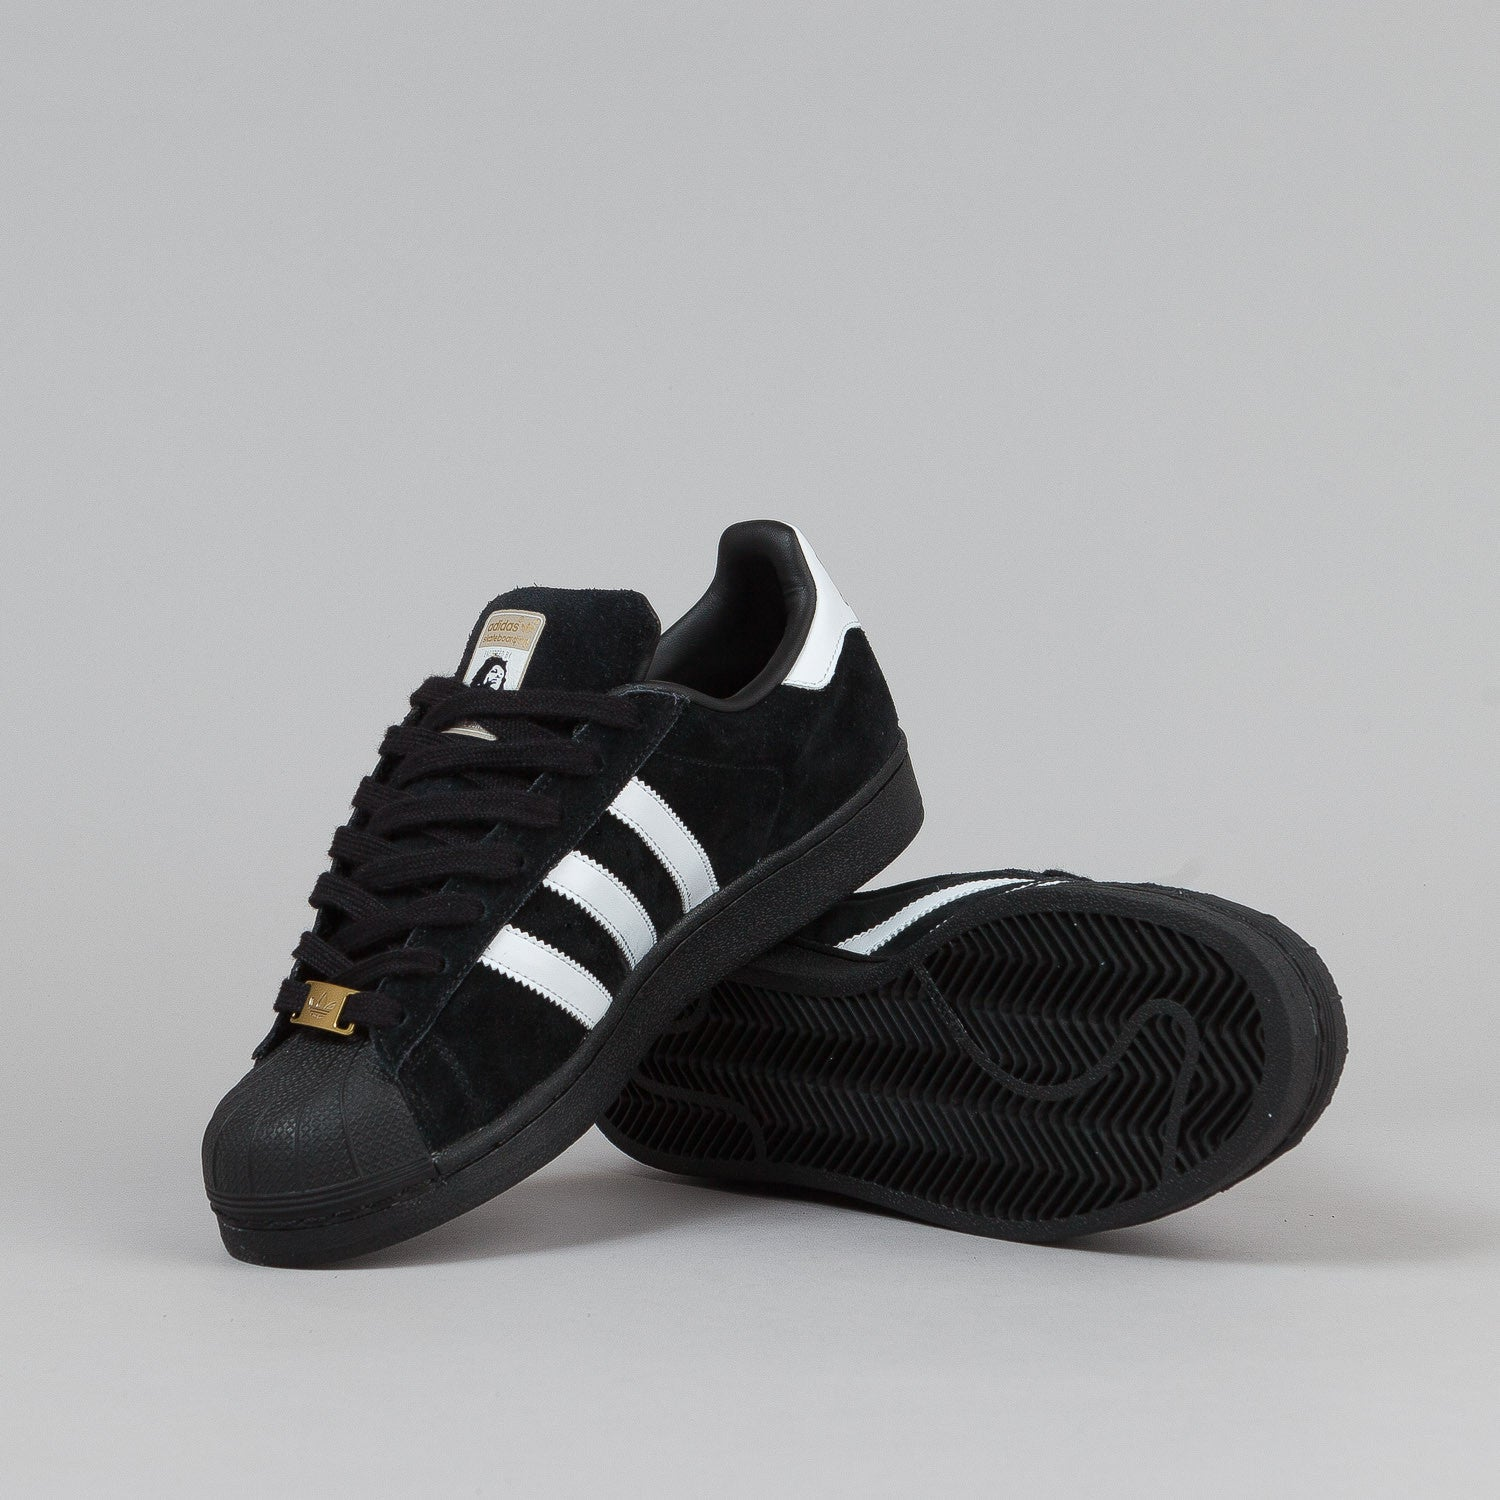 Adidas Originals Superstar Up W White Black Gold Metallic, Girls